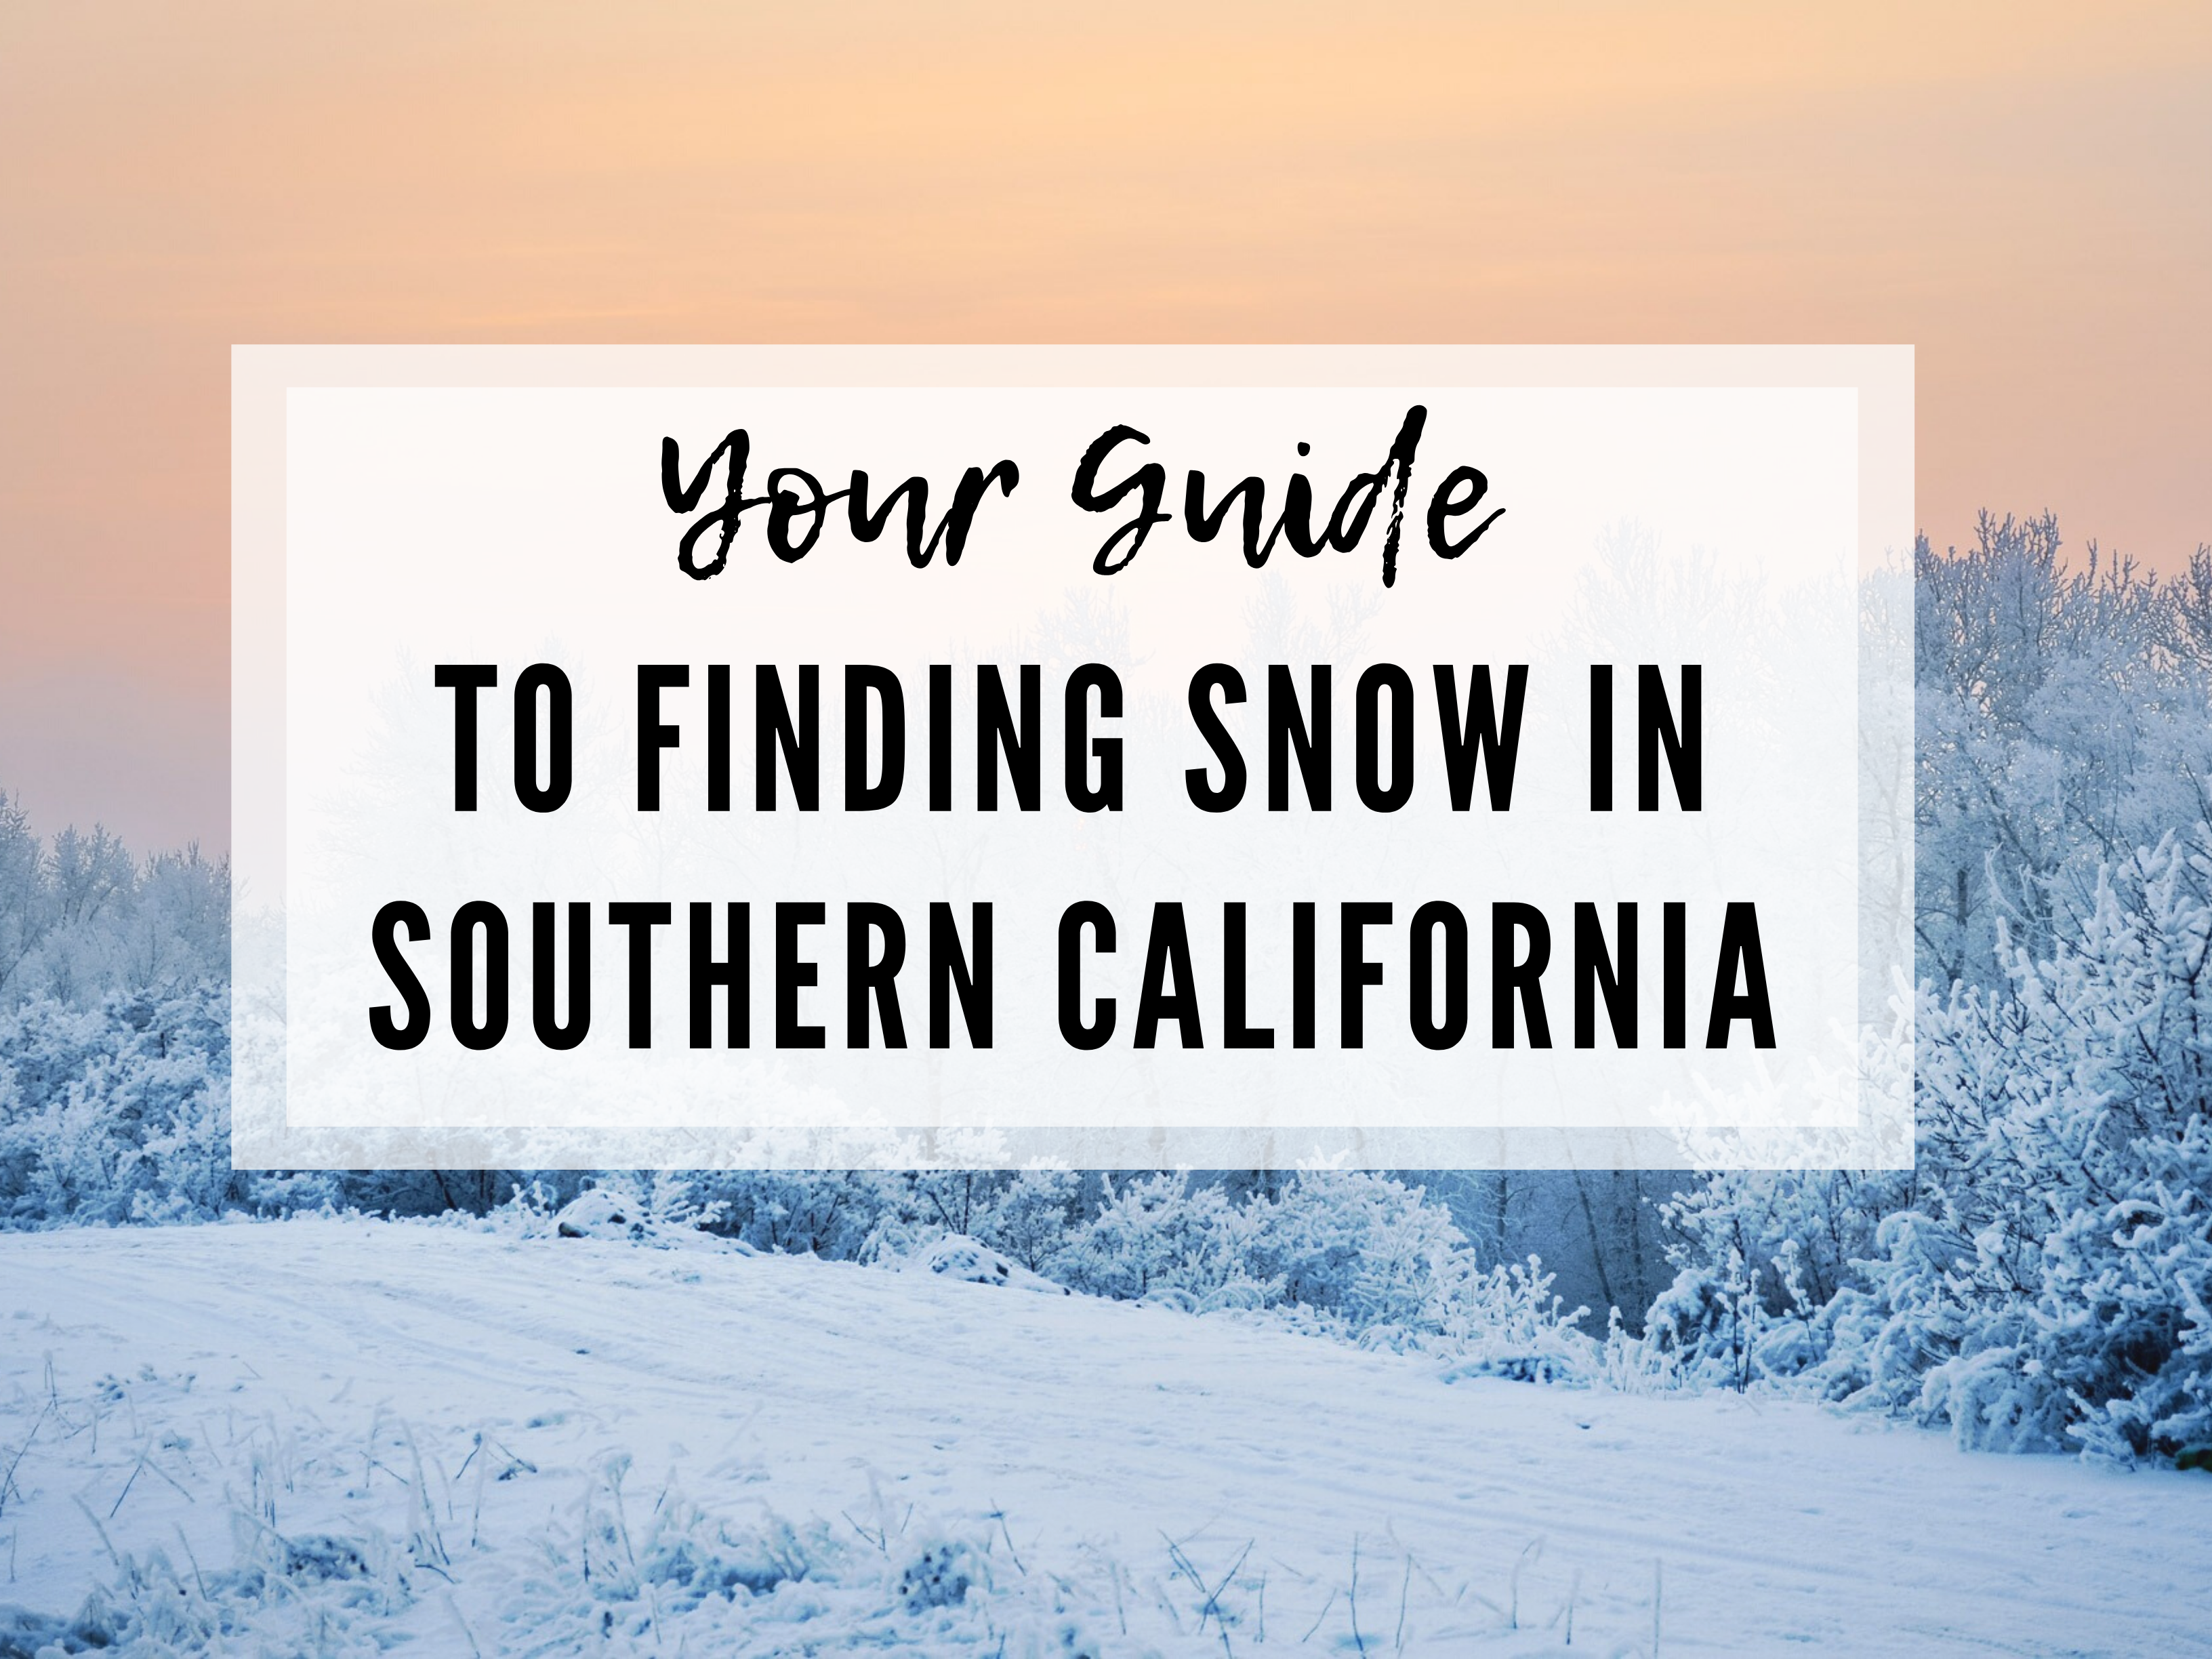 FINDING THE CLOSEST SNOW TO SAN DIEGO